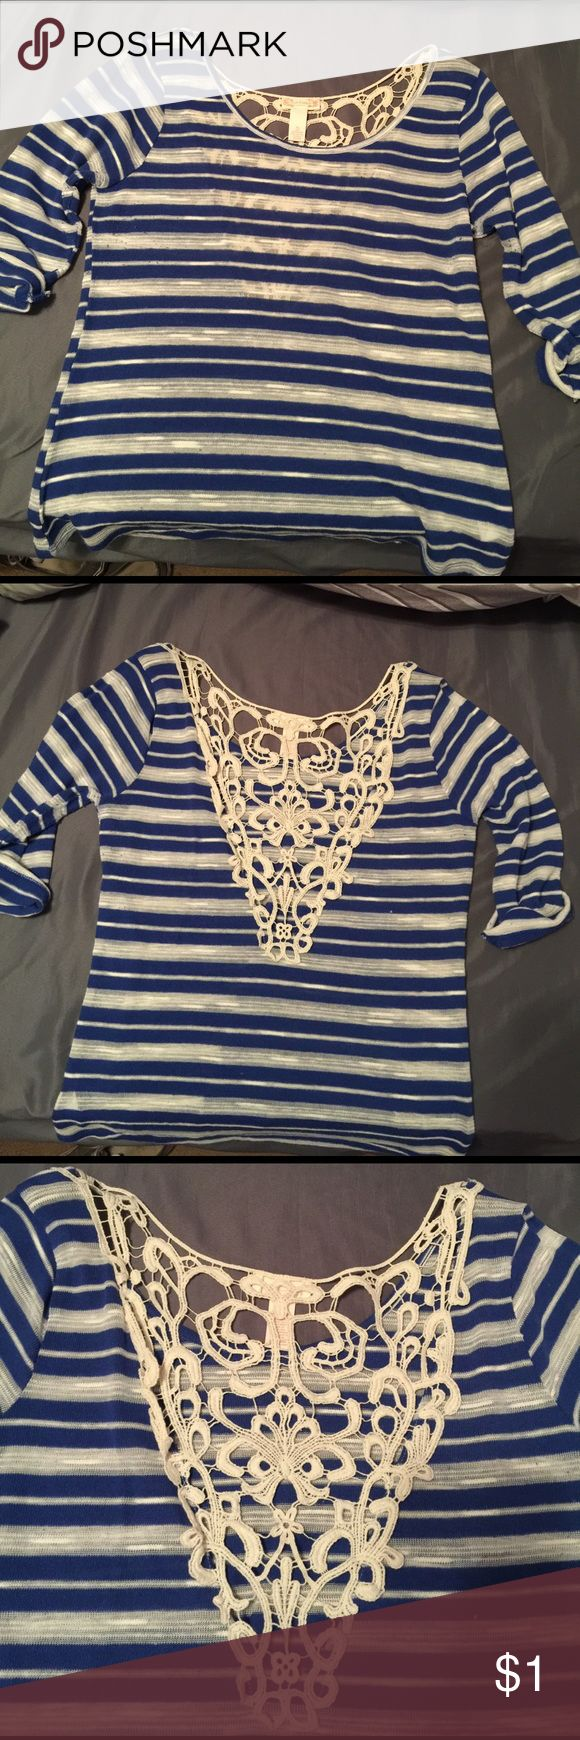 Junior's Red Camel Top Blue and white stripped top with plunging back and detailing on back Red Camel Tops Blouses